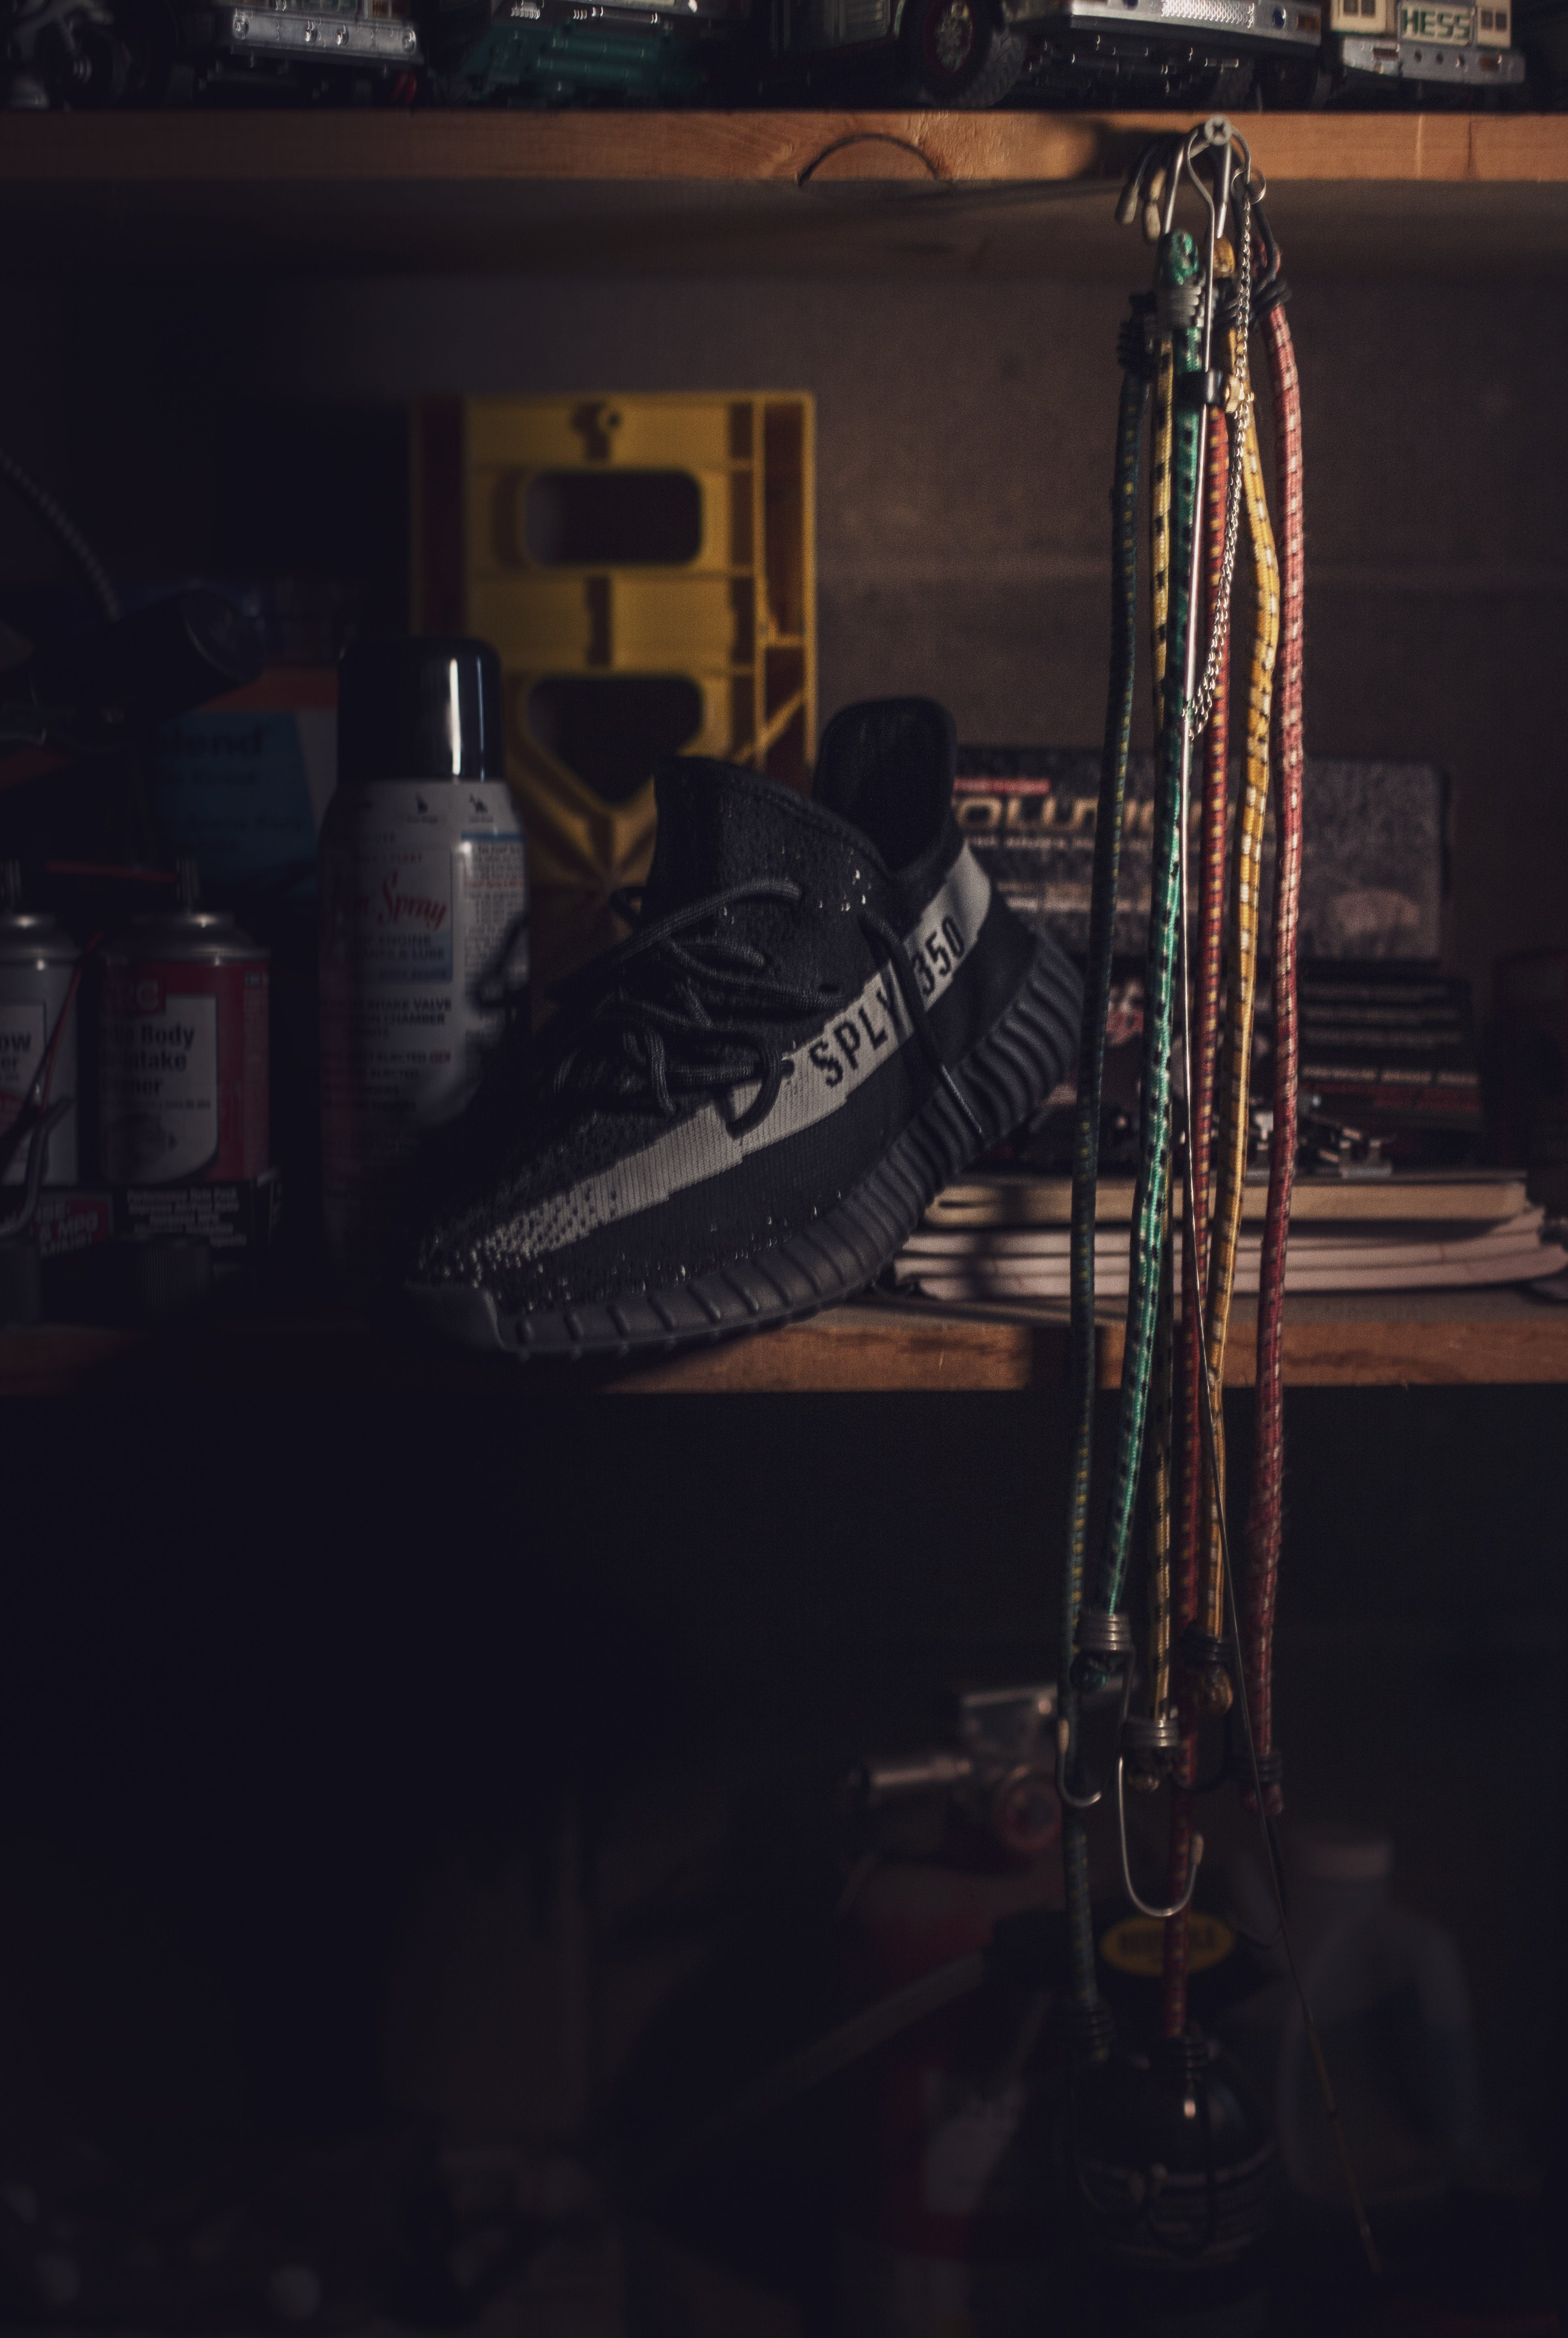 Free stock photo of sneakers